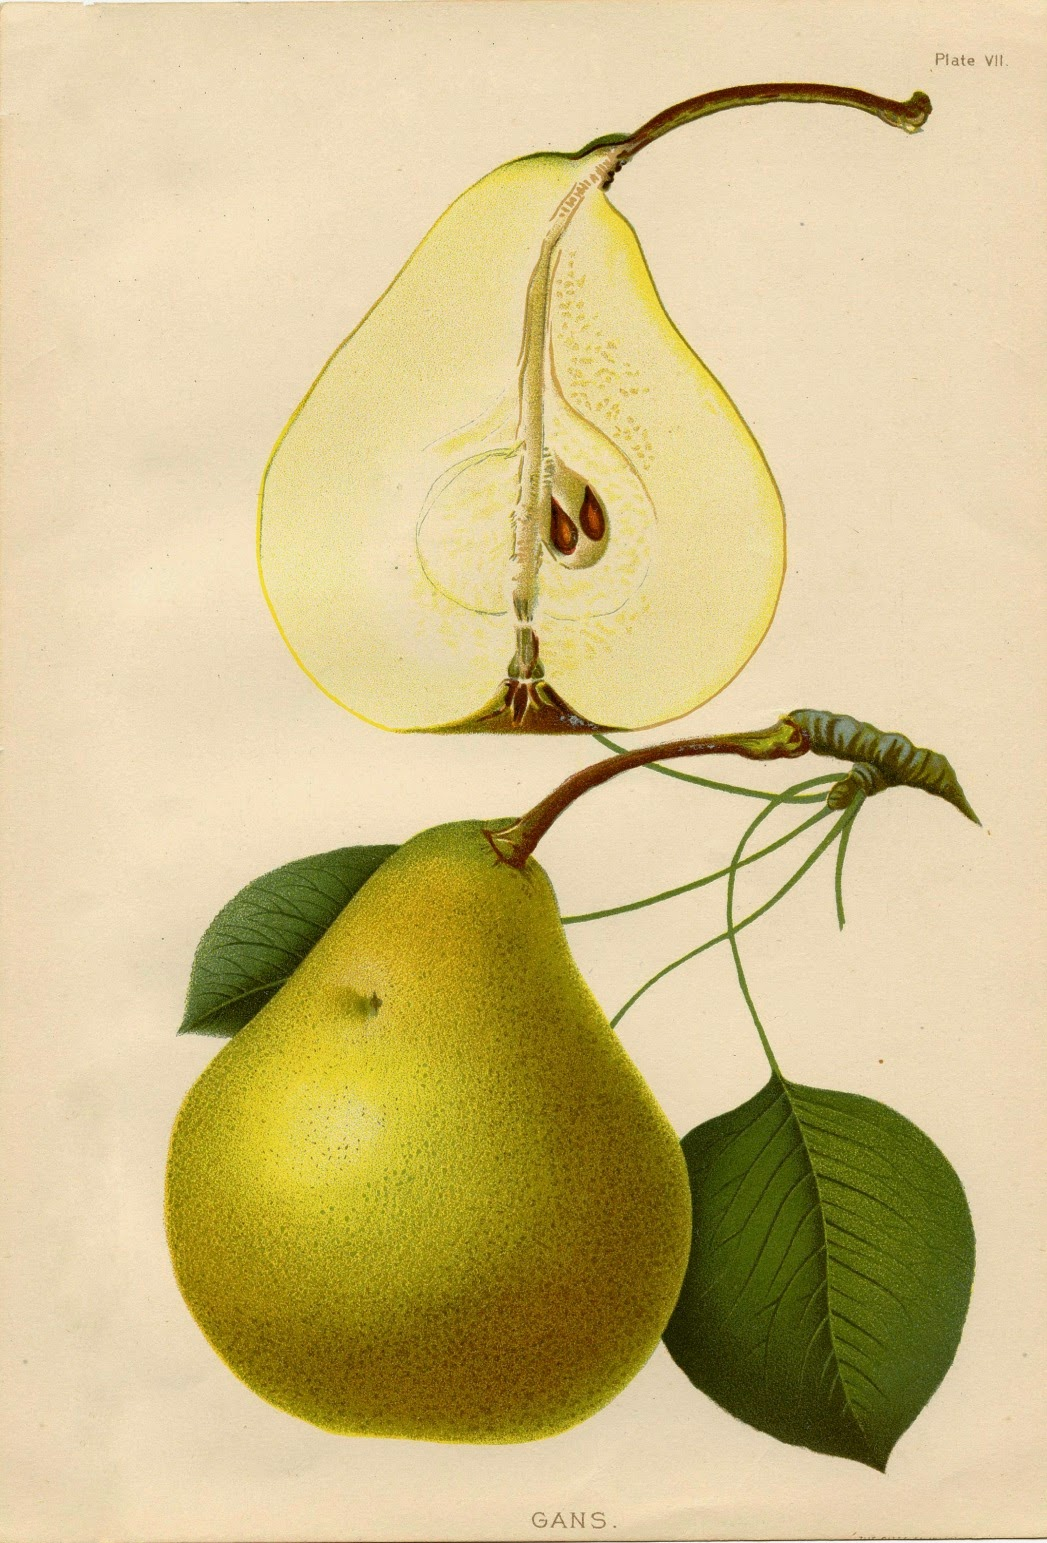 the daily glean eye catching botantical prints of fruit and